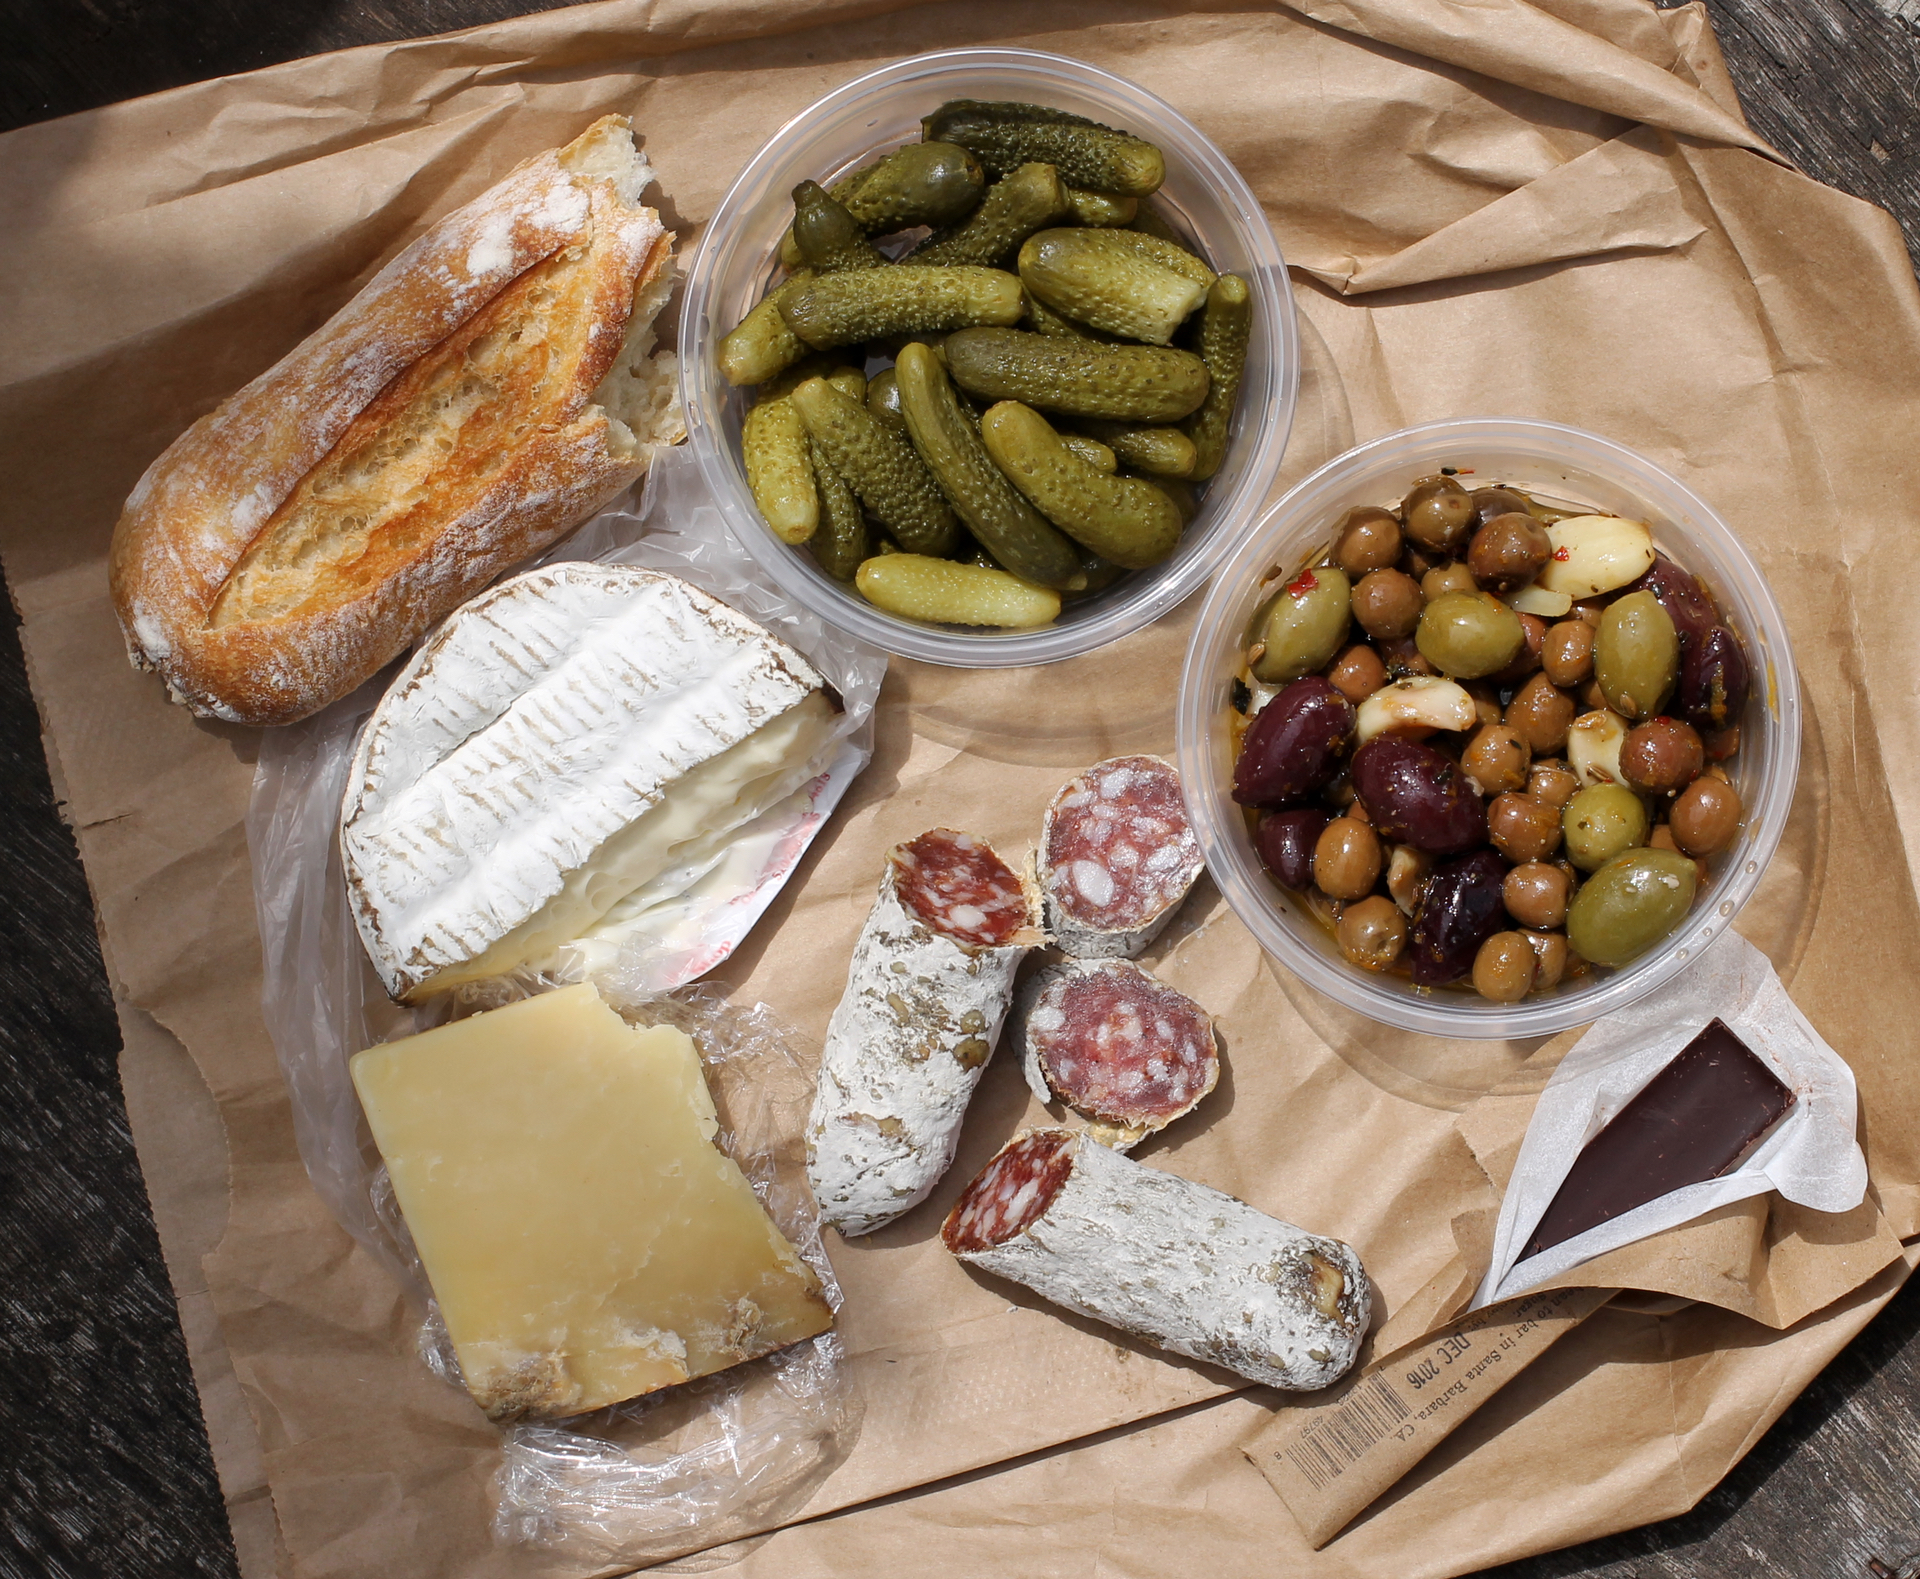 From top left, moving clockwise: Semifreddi's baguette, cornichon, mixed olives, Twenty-four Blackbirds chocolate, Olympia Provisions sopressata, Montgomery's Farmhouse cheddar, and Jasper Hill Harbison, all from The Pasta Shop.